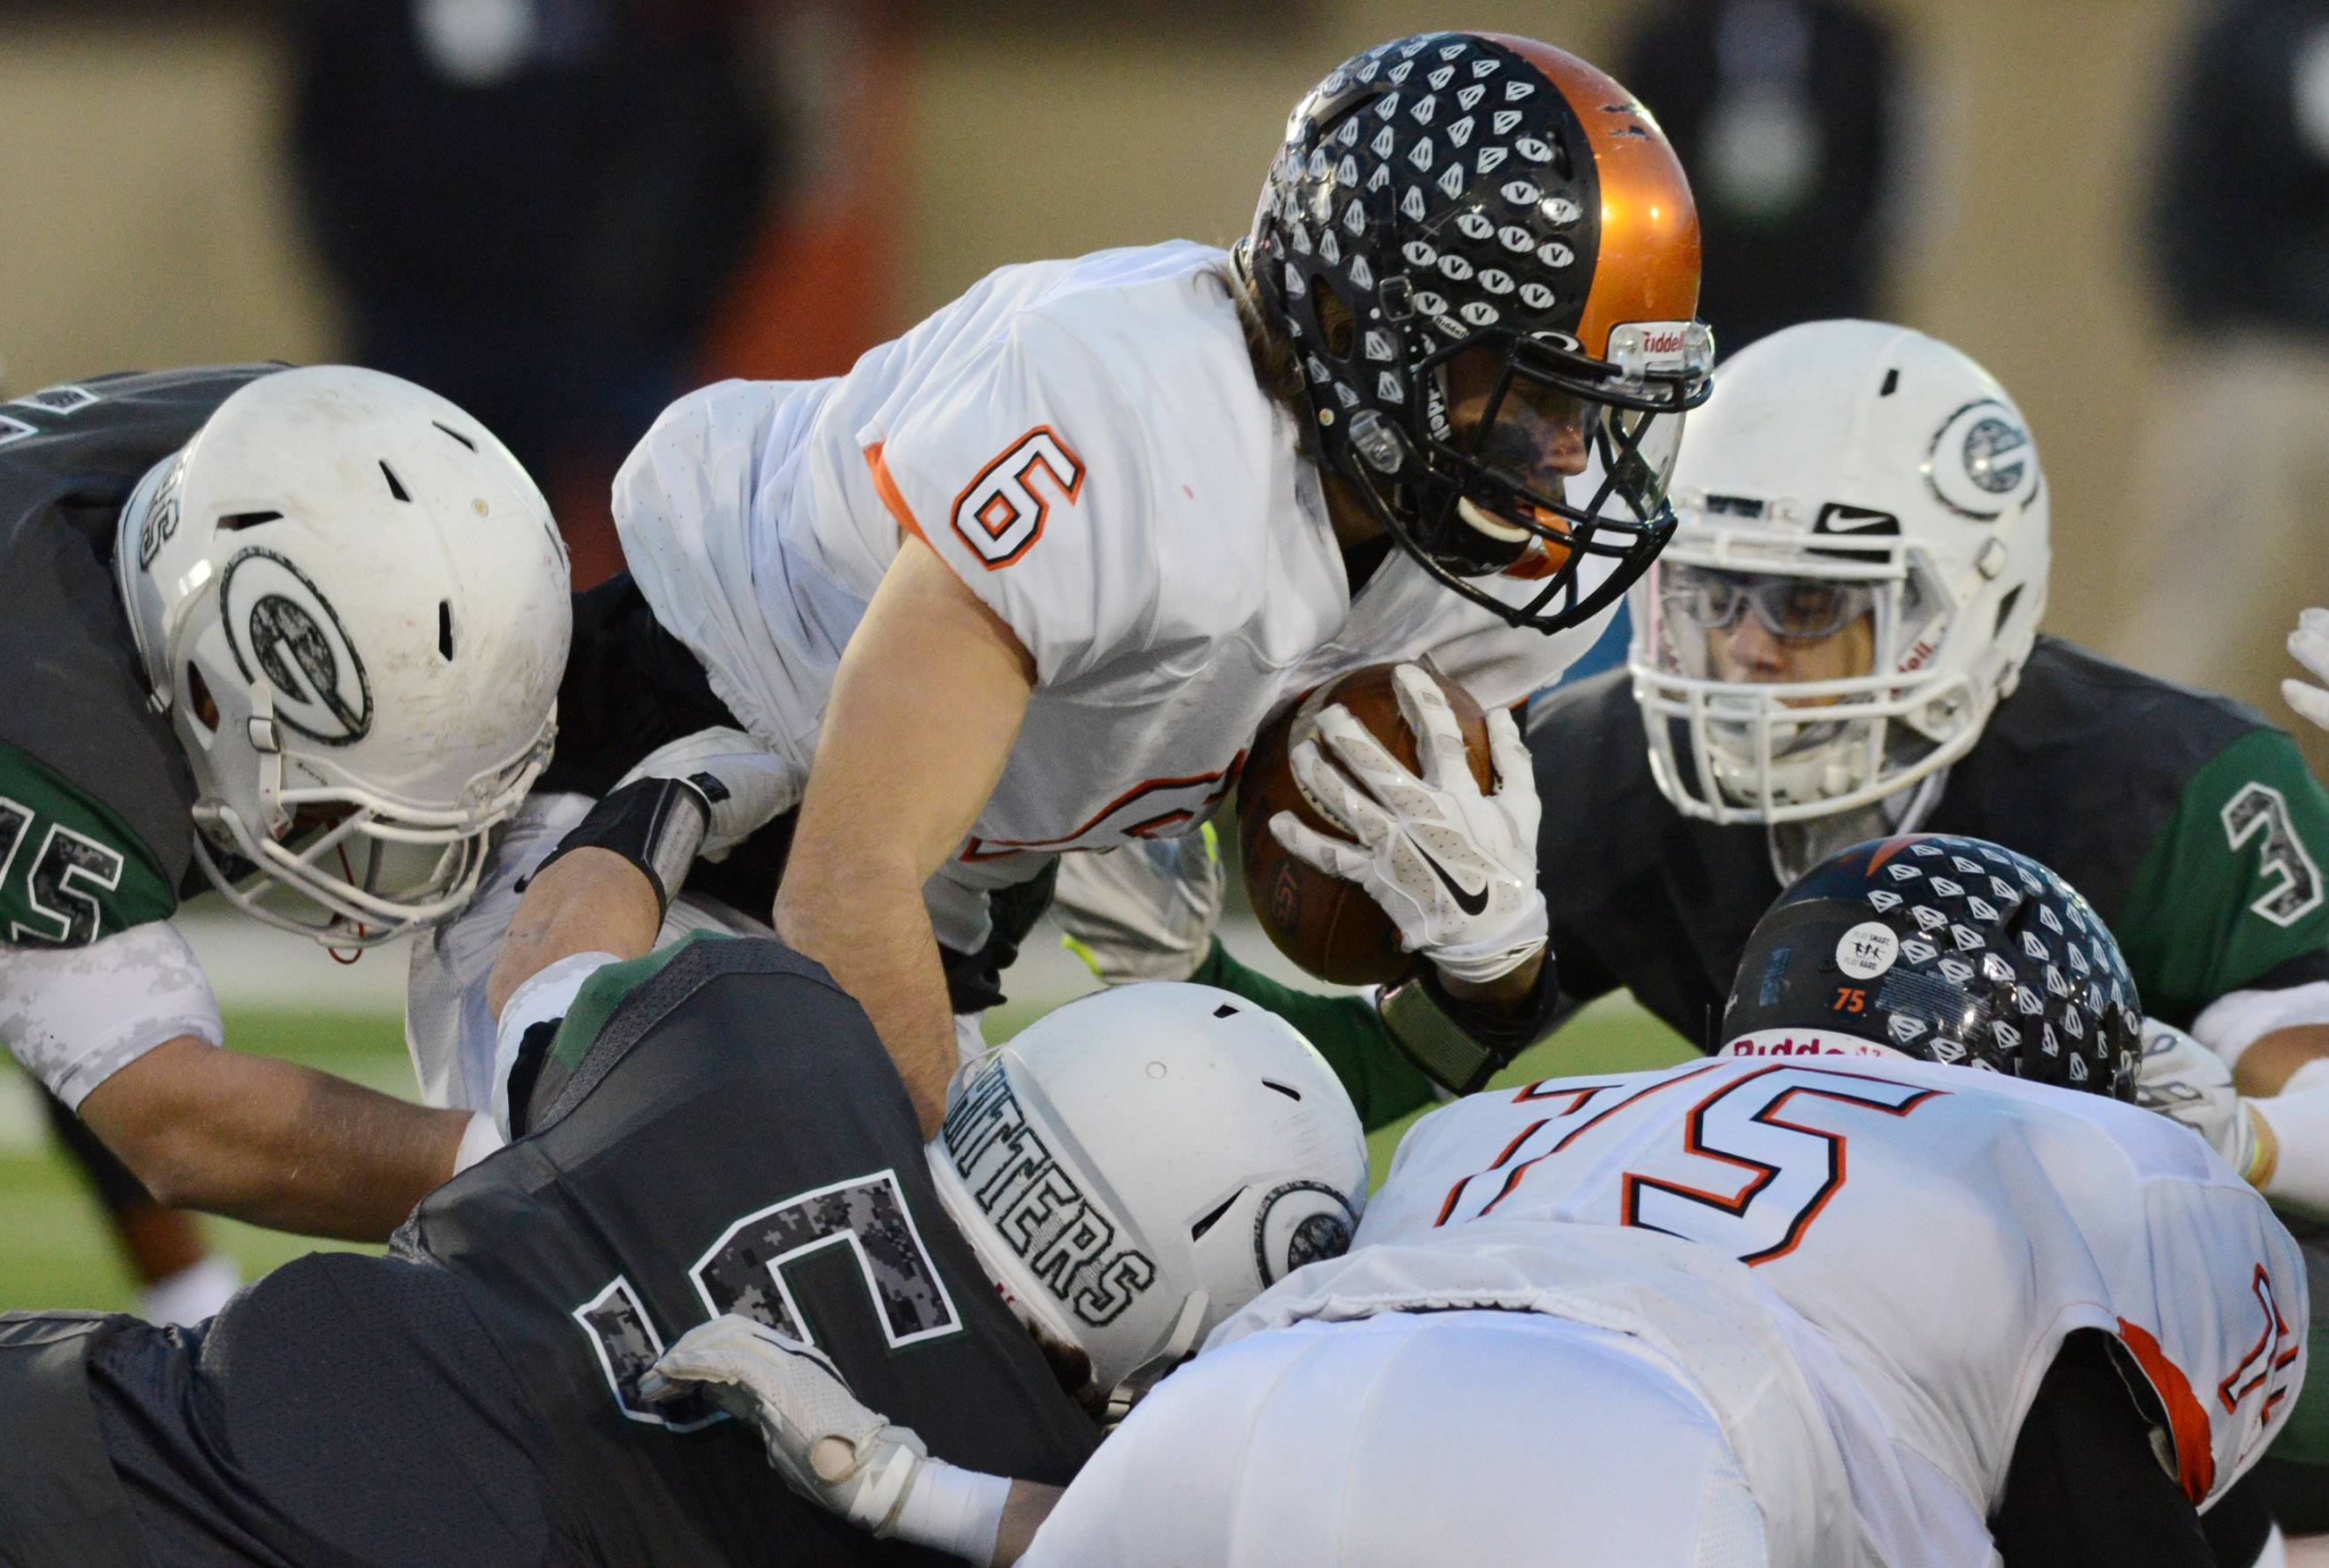 Libertyville quarterback Riley Lees carries the ball against Glenbard West in the Class 7A football state championship game on Saturday at Huskie Stadium in DeKalb.